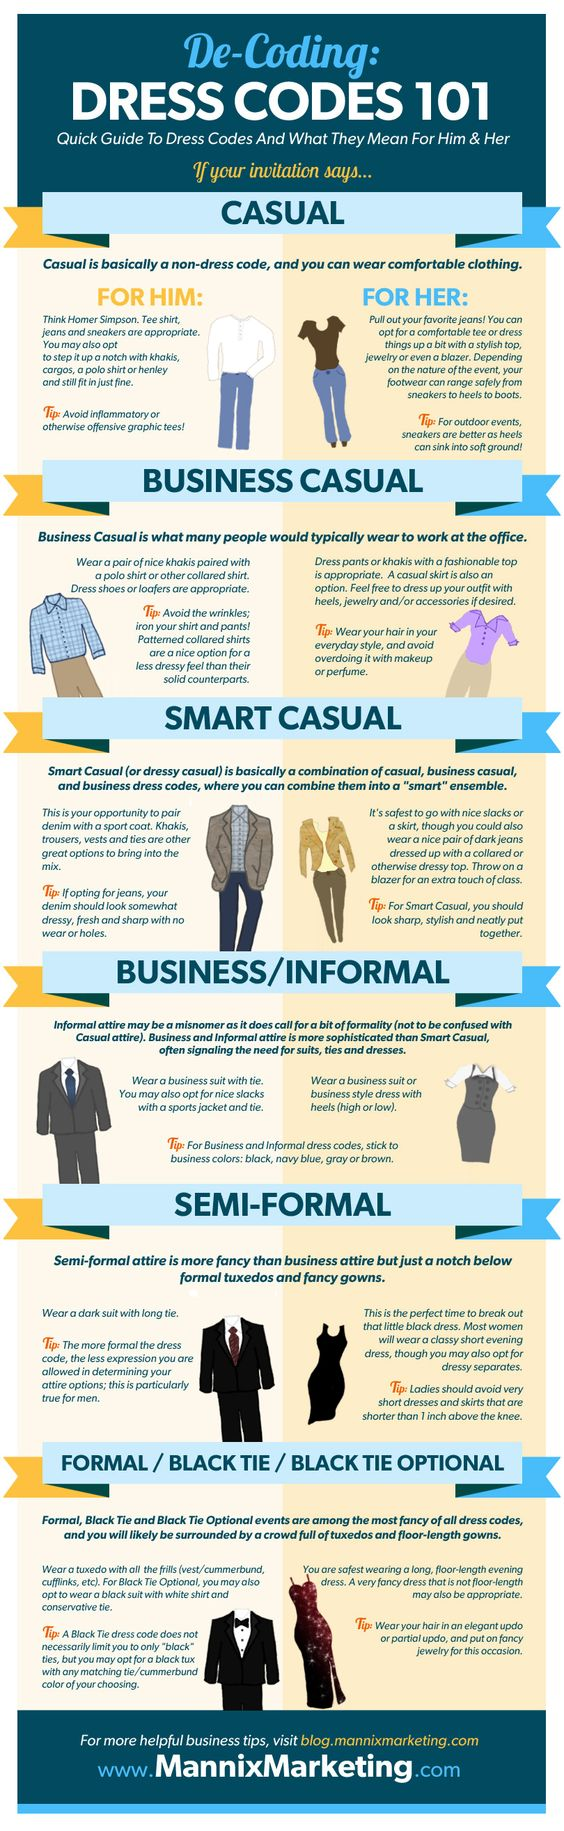 Infografik Business Dresscode (Bild: MannixMarketing.com)